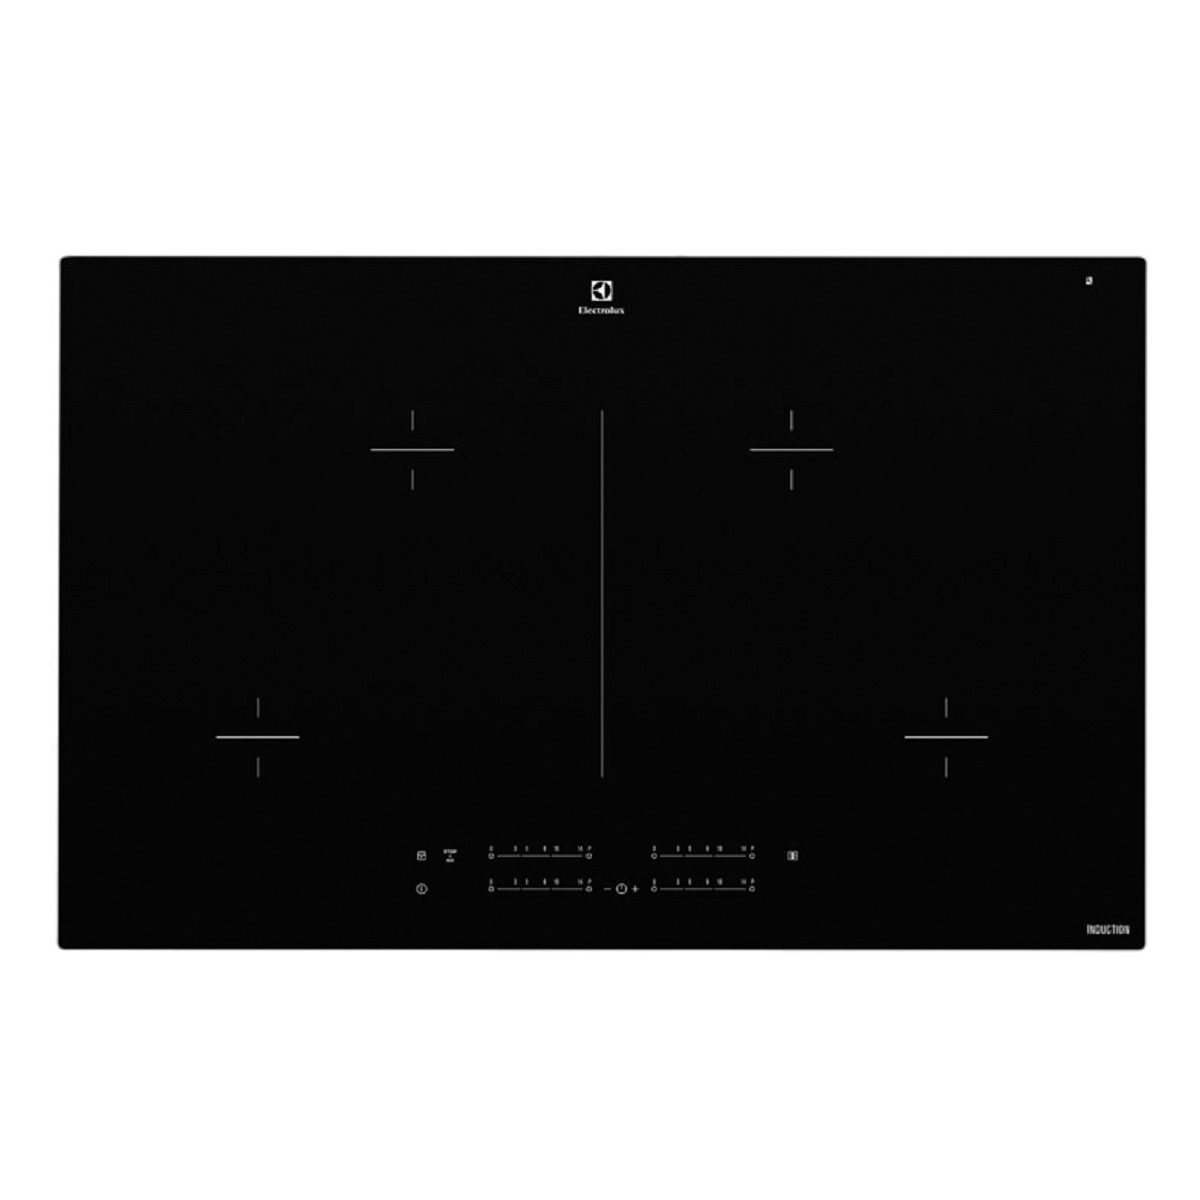 Electrolux EHI845BA 80cm Induction Cooktop 28146